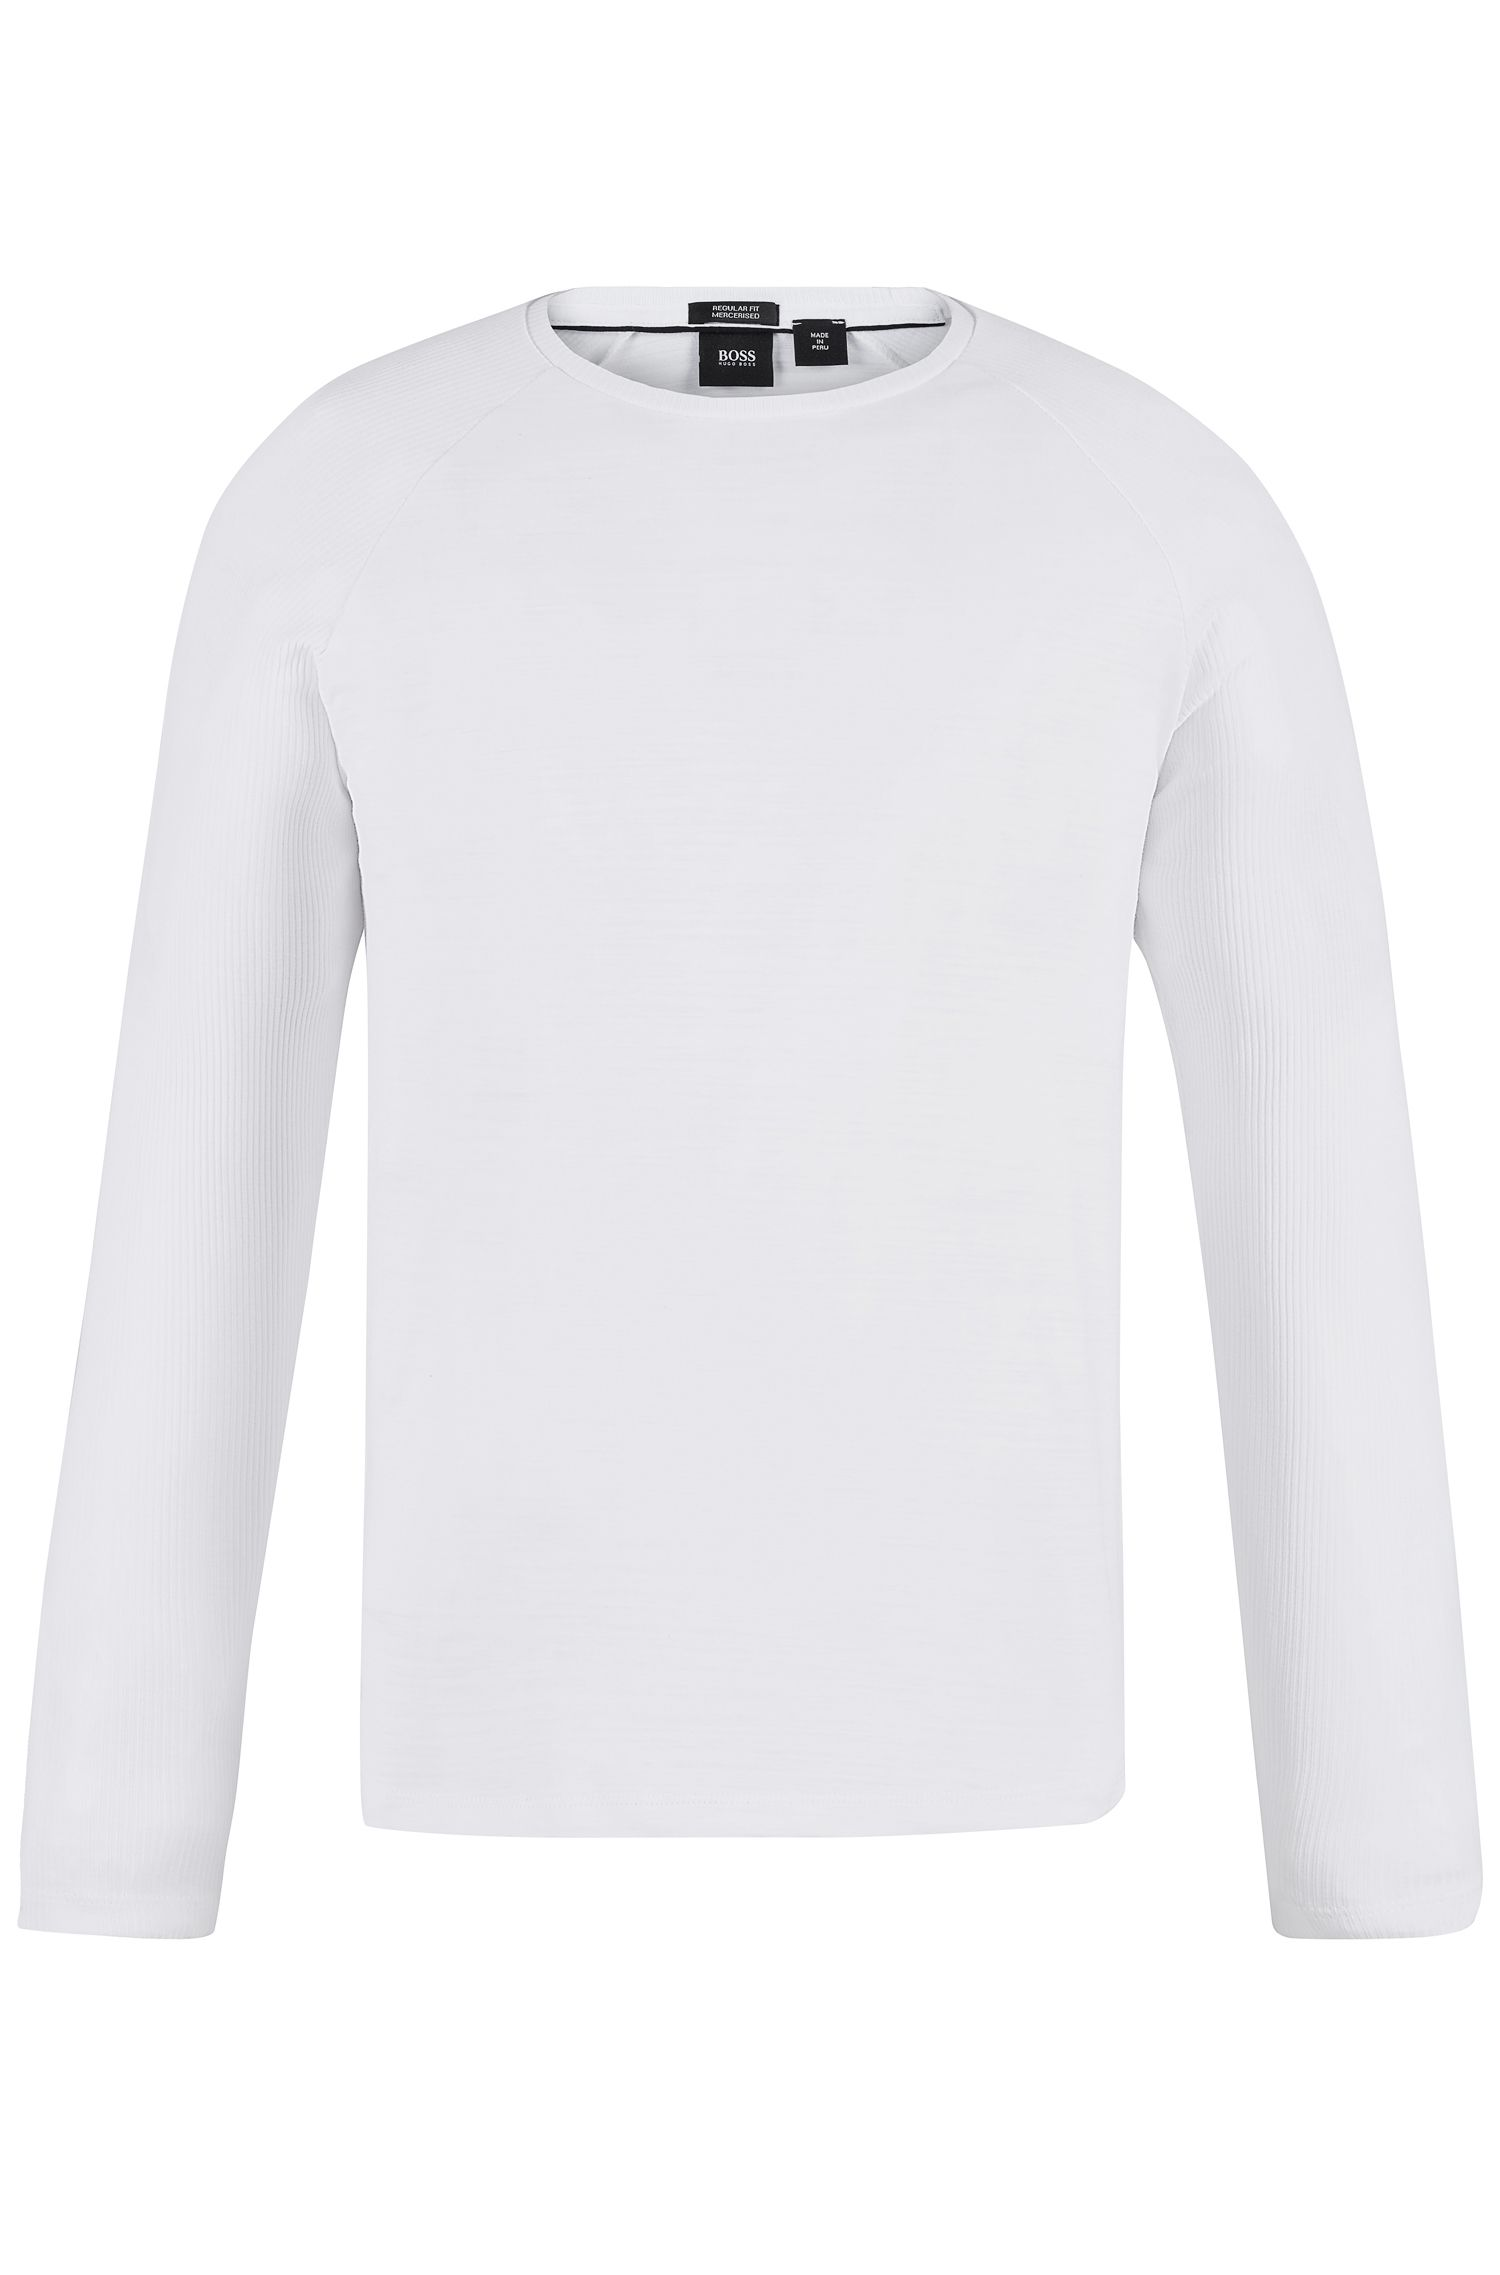 'Terell' | Cotton Long-Sleeved T-Shirt